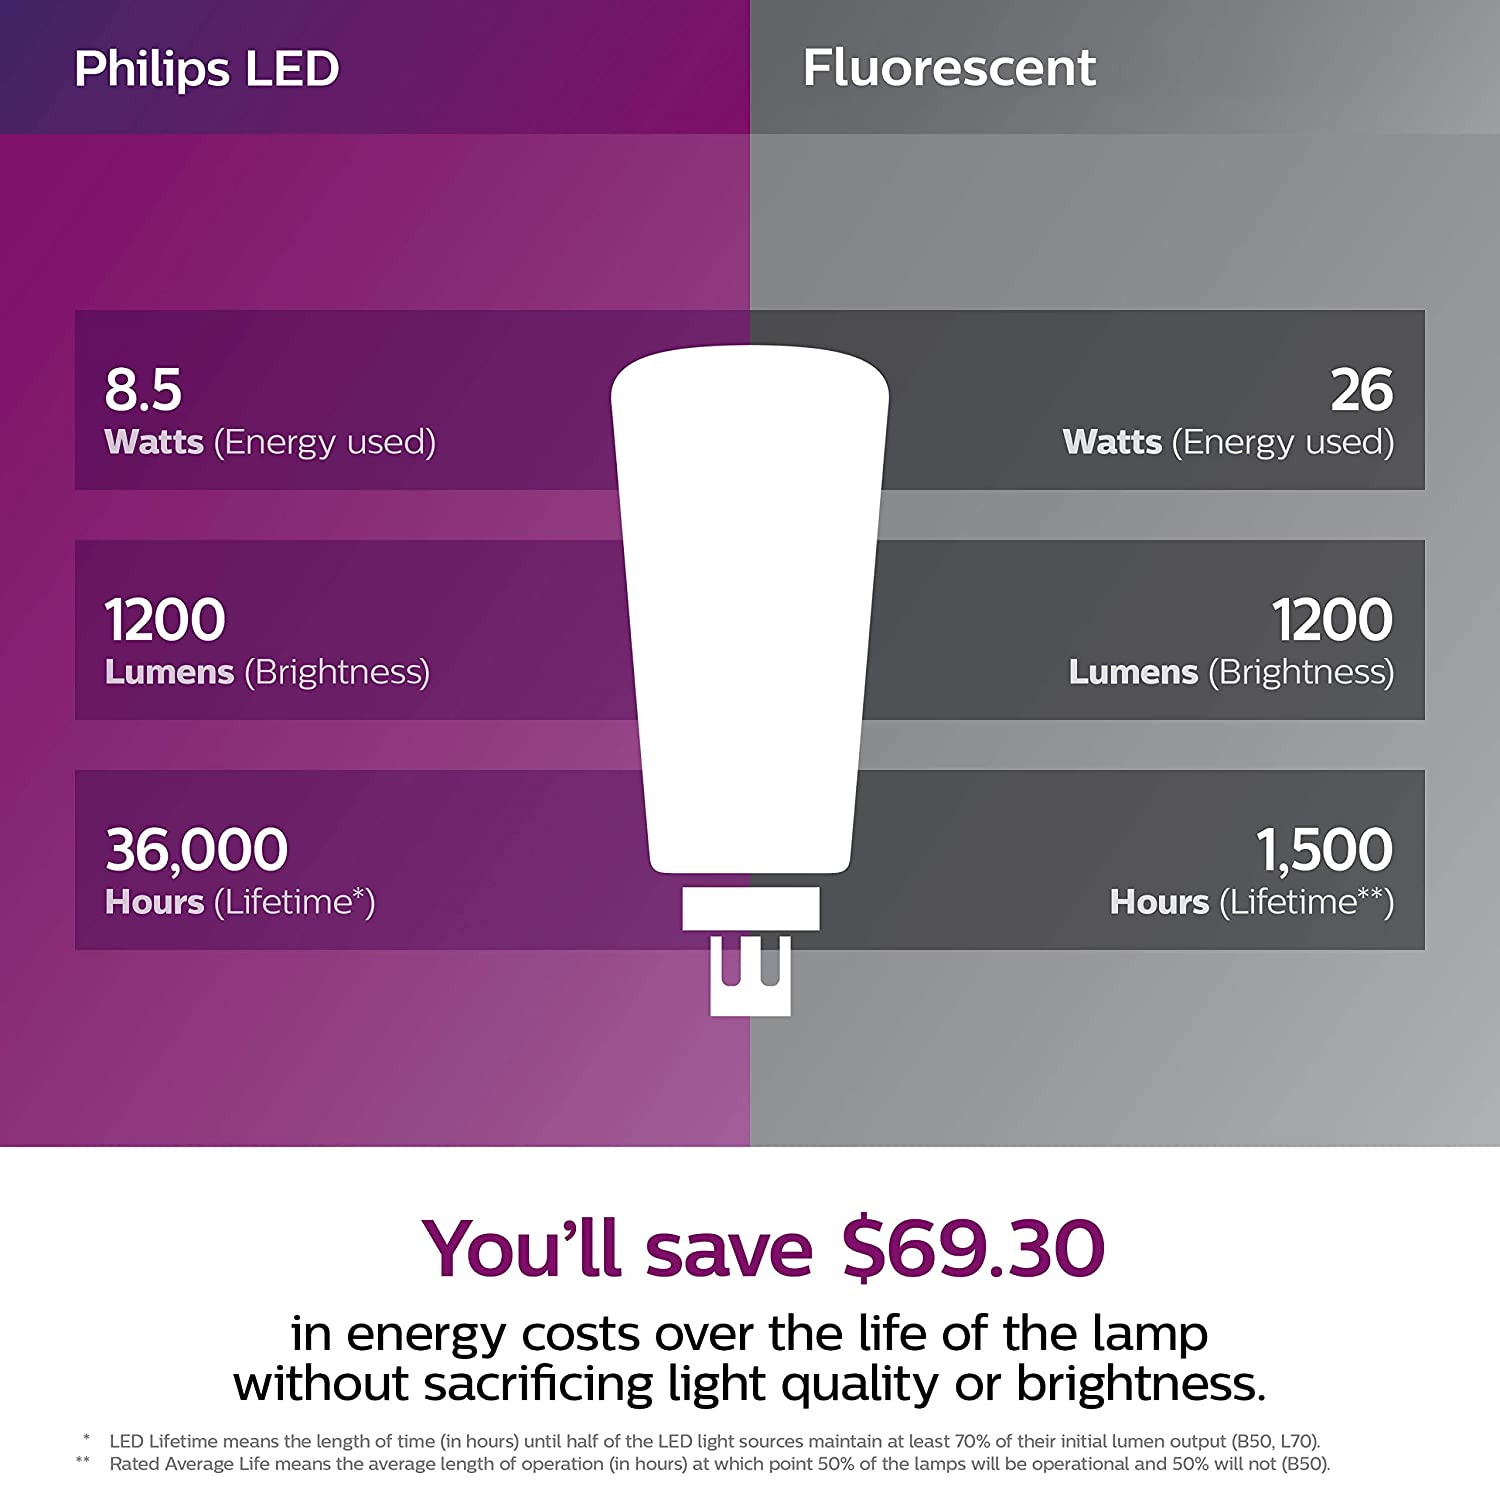 Philips LED 535385 Dimmable Energy Saver PL-C/T Light Bulb: 1200-Lumen, 3500-Kelvin, 10.5 (26-Watt Equivalent), 4-Pin G24Q/GX24Q Base, Frosted, ...